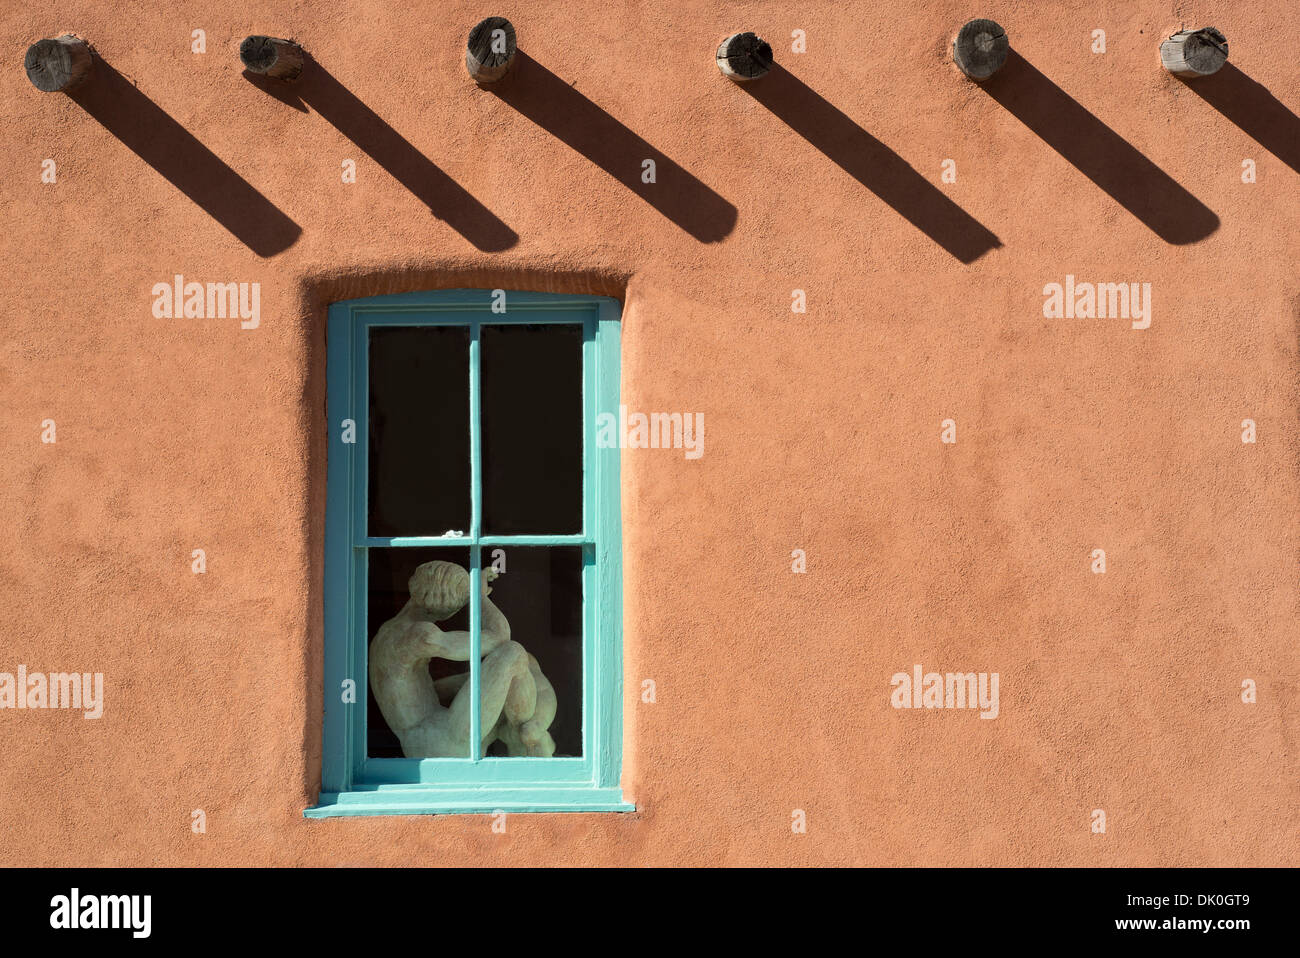 Mannequin in store front. Canyon Road, Santa Fe, New Mexico. - Stock Image